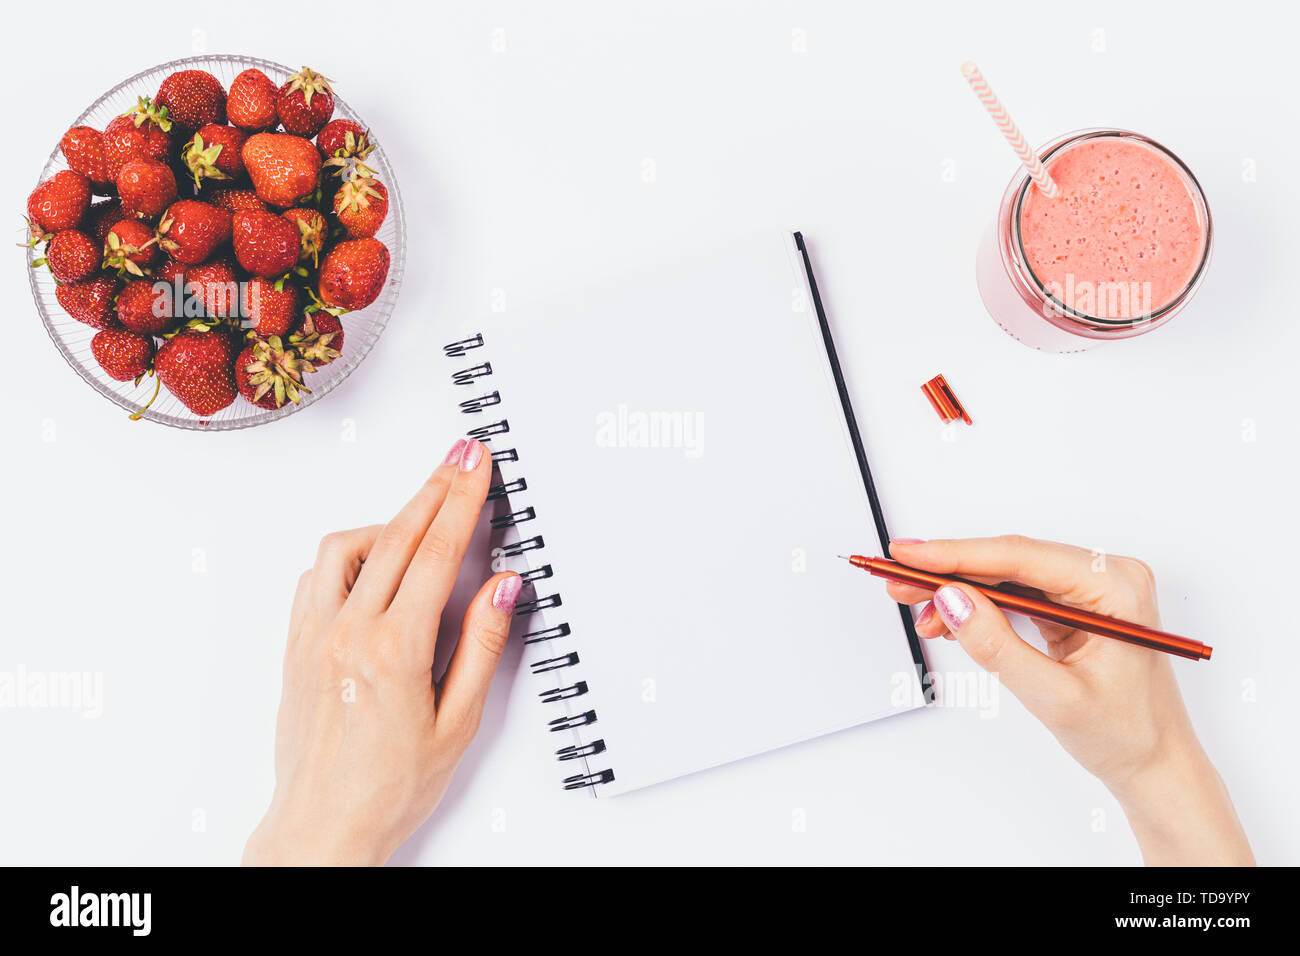 Flat lay arrangement of woman's hands writing in empty notebook next to bowl of fresh strawberries and smoothie on white background, top view. - Stock Image